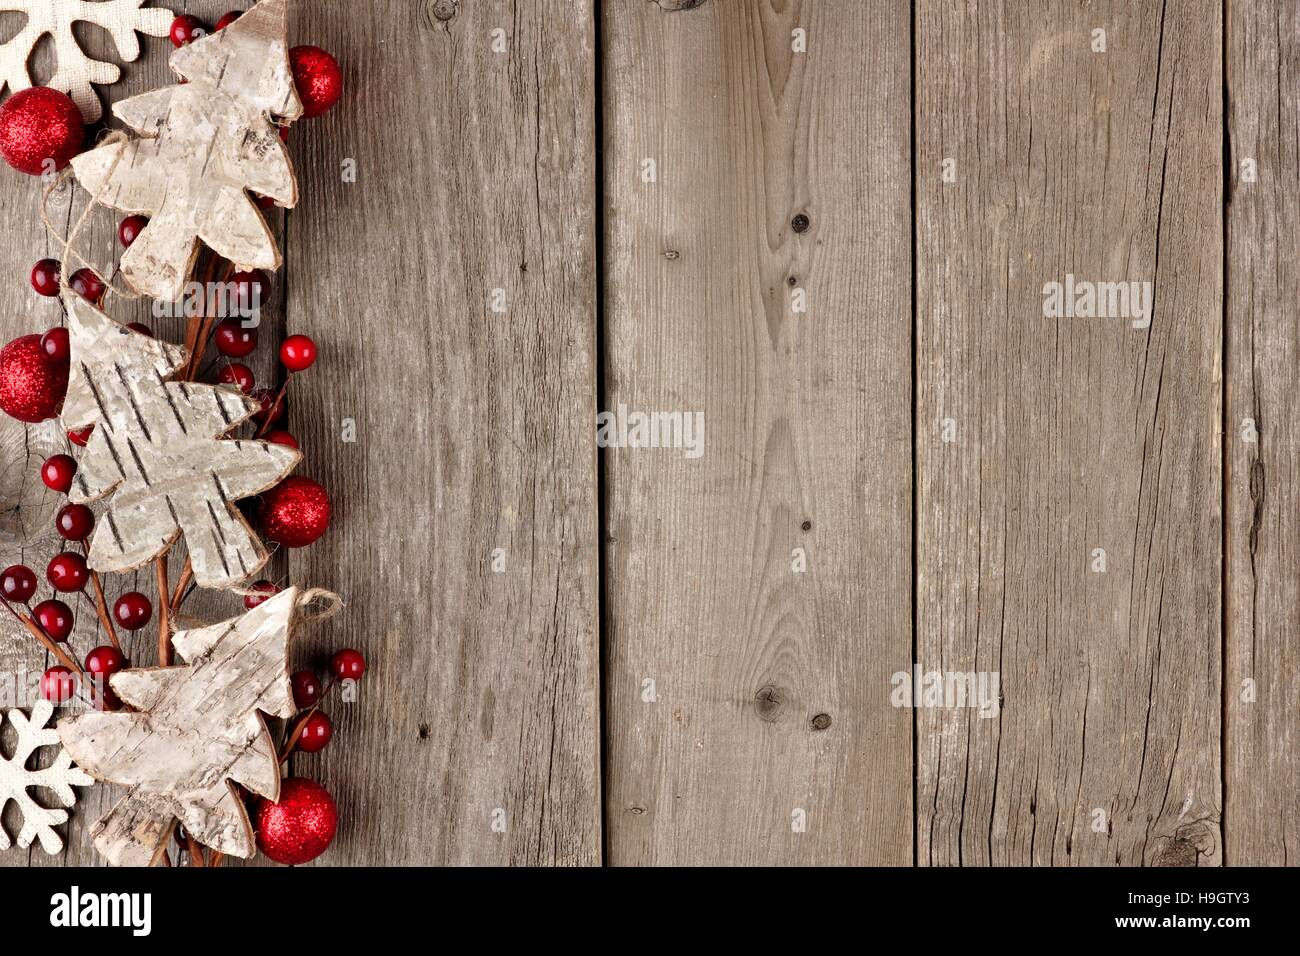 rustic christmas side border with wood ornaments and berries on an aged wood background stock - Rustic Christmas Background